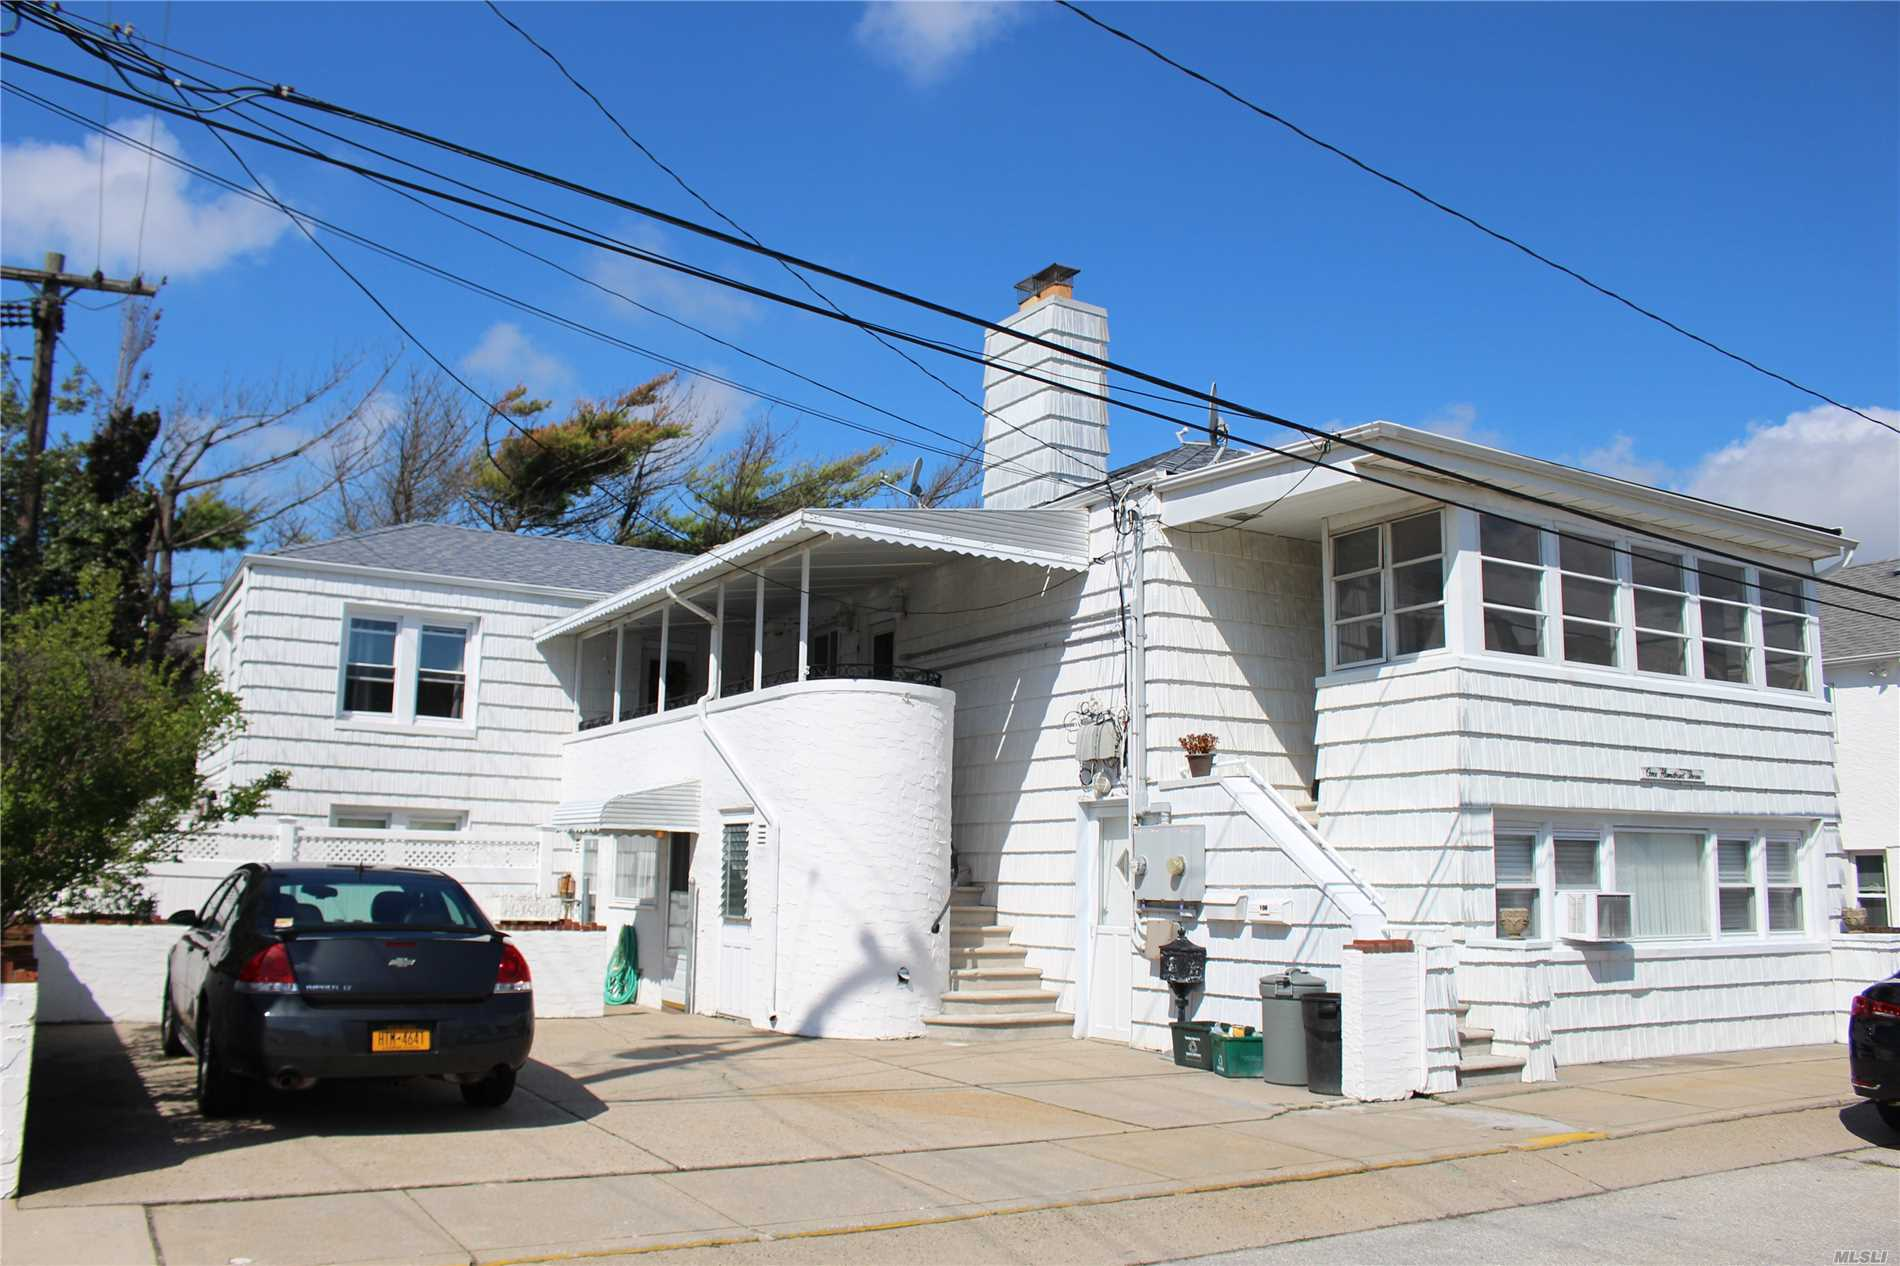 East Atlantic Beach. Spacious Upper 3 Bedroom 1.5 Bath. Offering Updated Features, New Carpets, Sun-Room, Walk-In Closets, Large Front Terrace, Washer Dryer, Shared Use Of Yard. 2 Parking Spaces, Private Beach Rights.